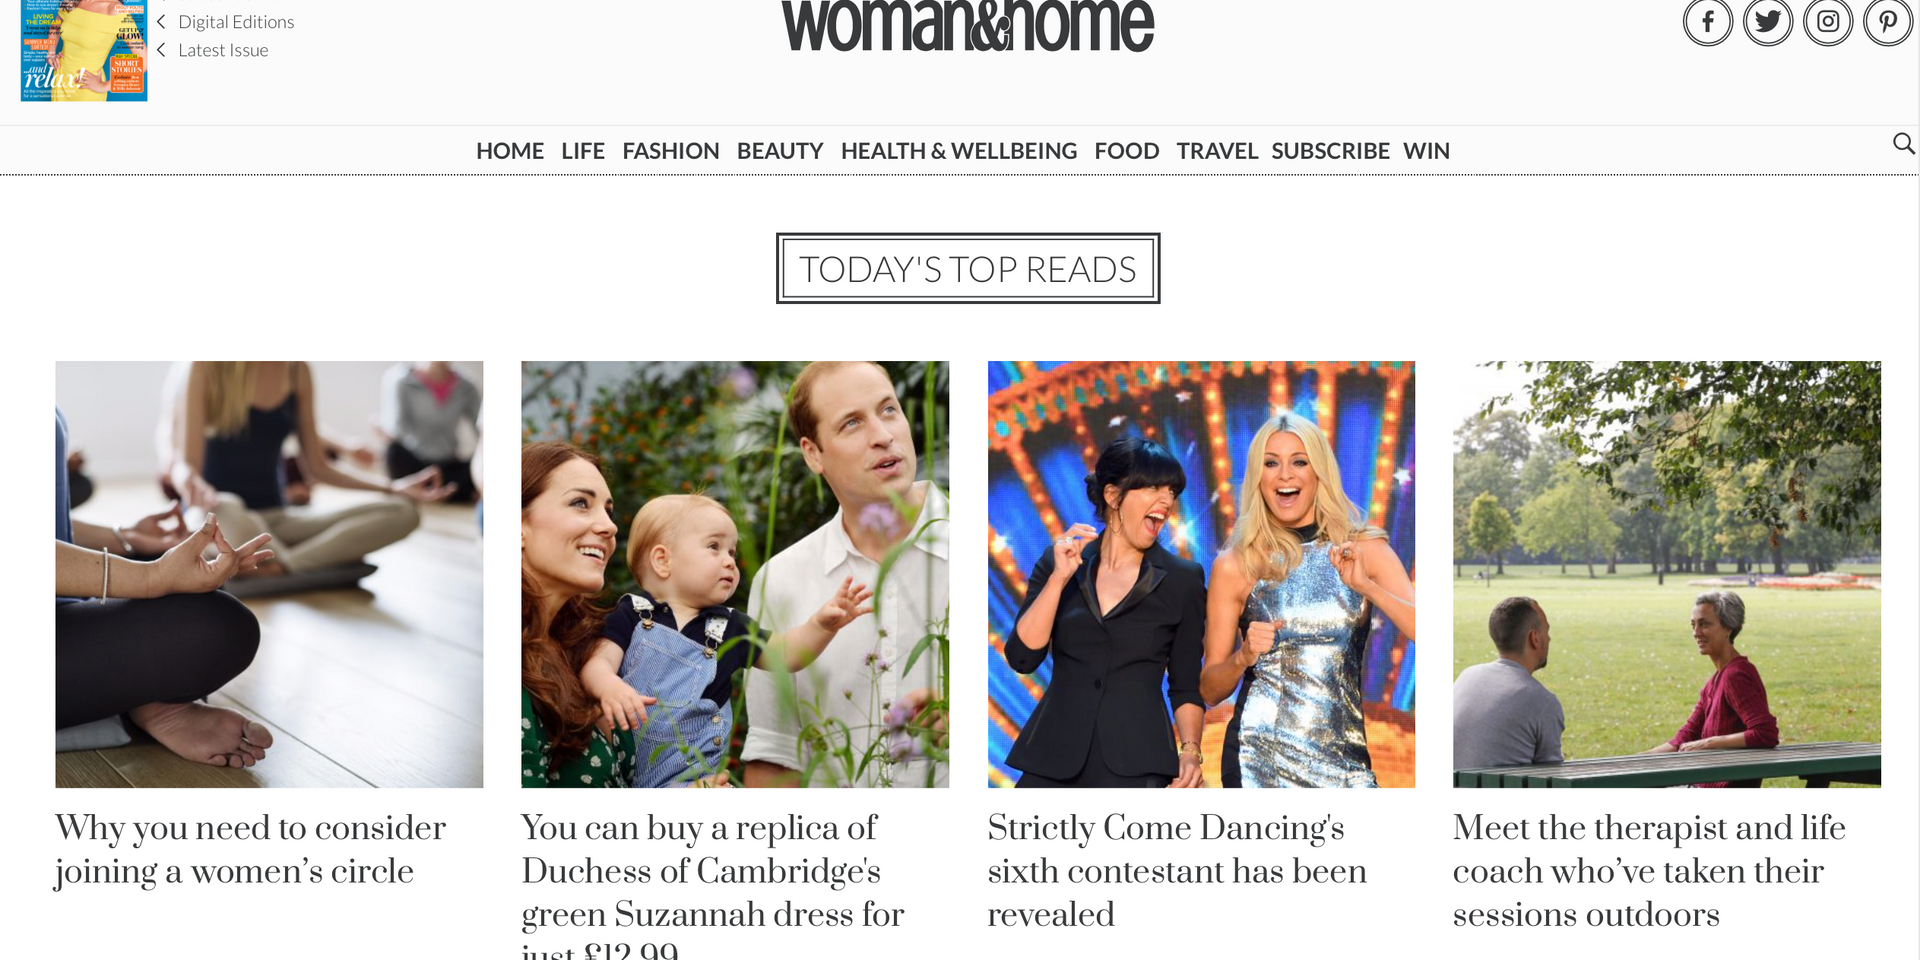 Daily woman&home news stories, woman&home